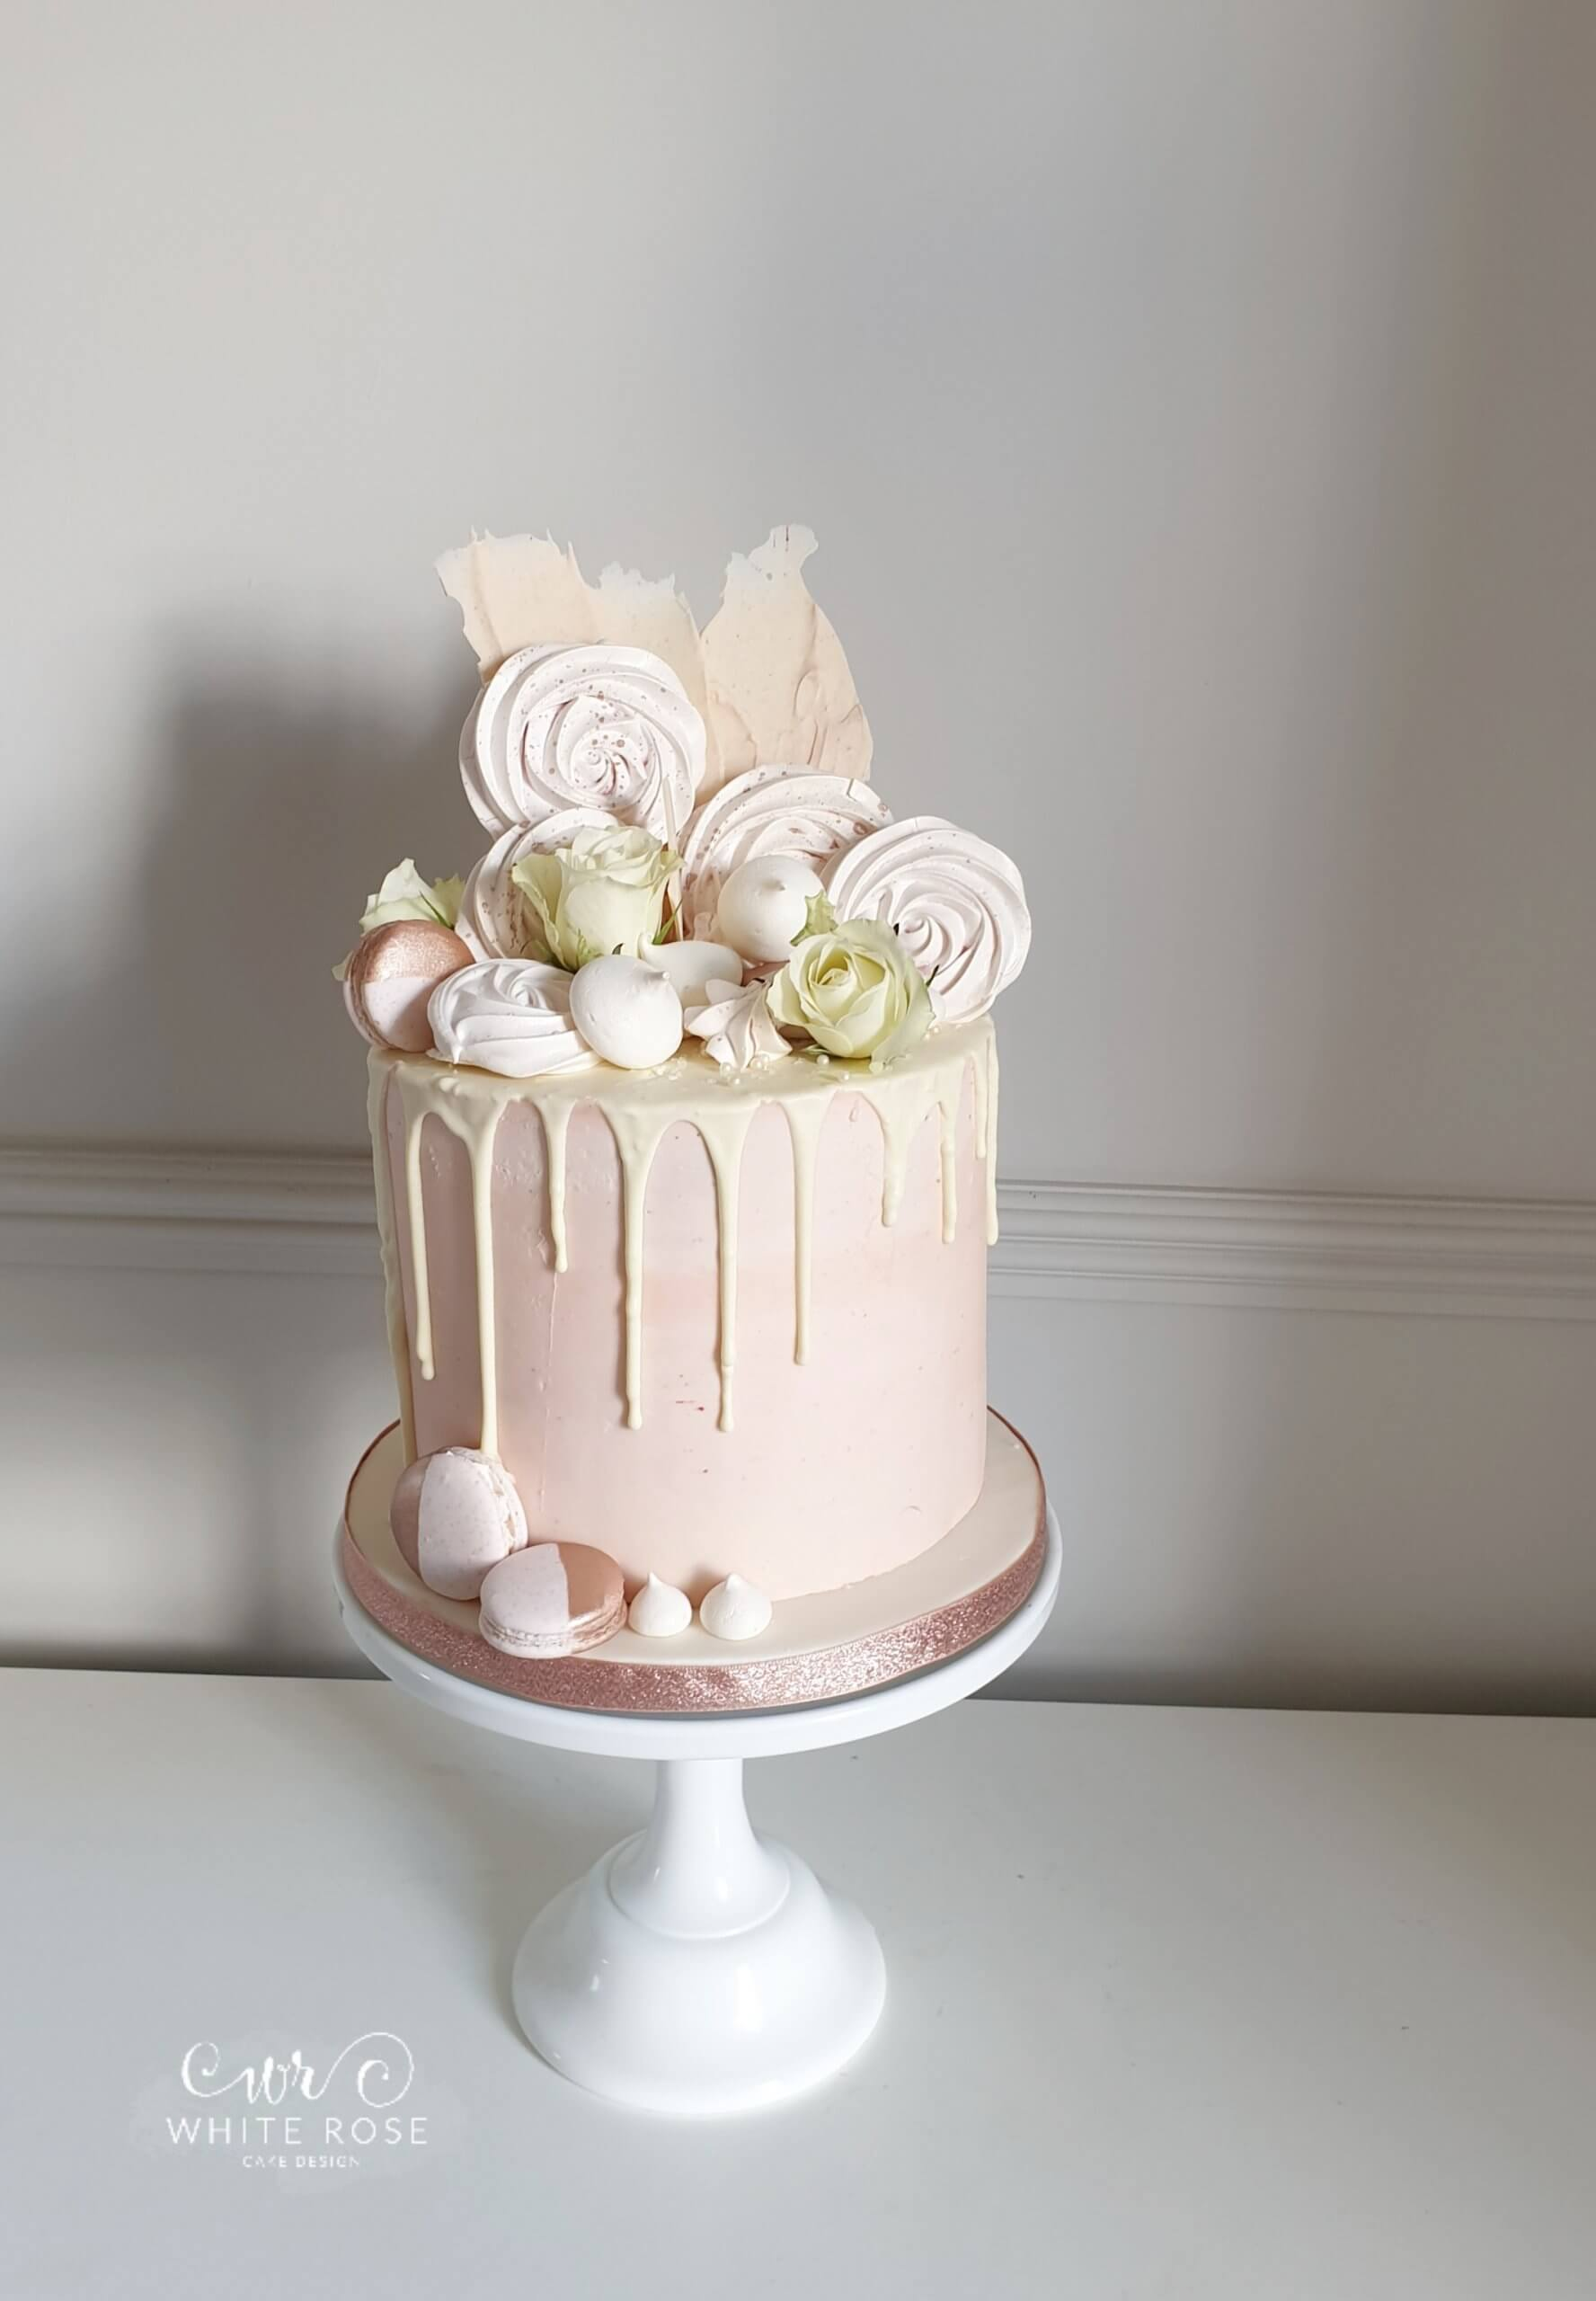 Blush-Pink-Drippy-Birthday-Cake-by-White-Rose-Cake-Design-Luxury-Birthday-Cakes-in-West-Yorkshire - macaron on cake - blush pink - drippy birthday cake - 40th birthday cake ideas